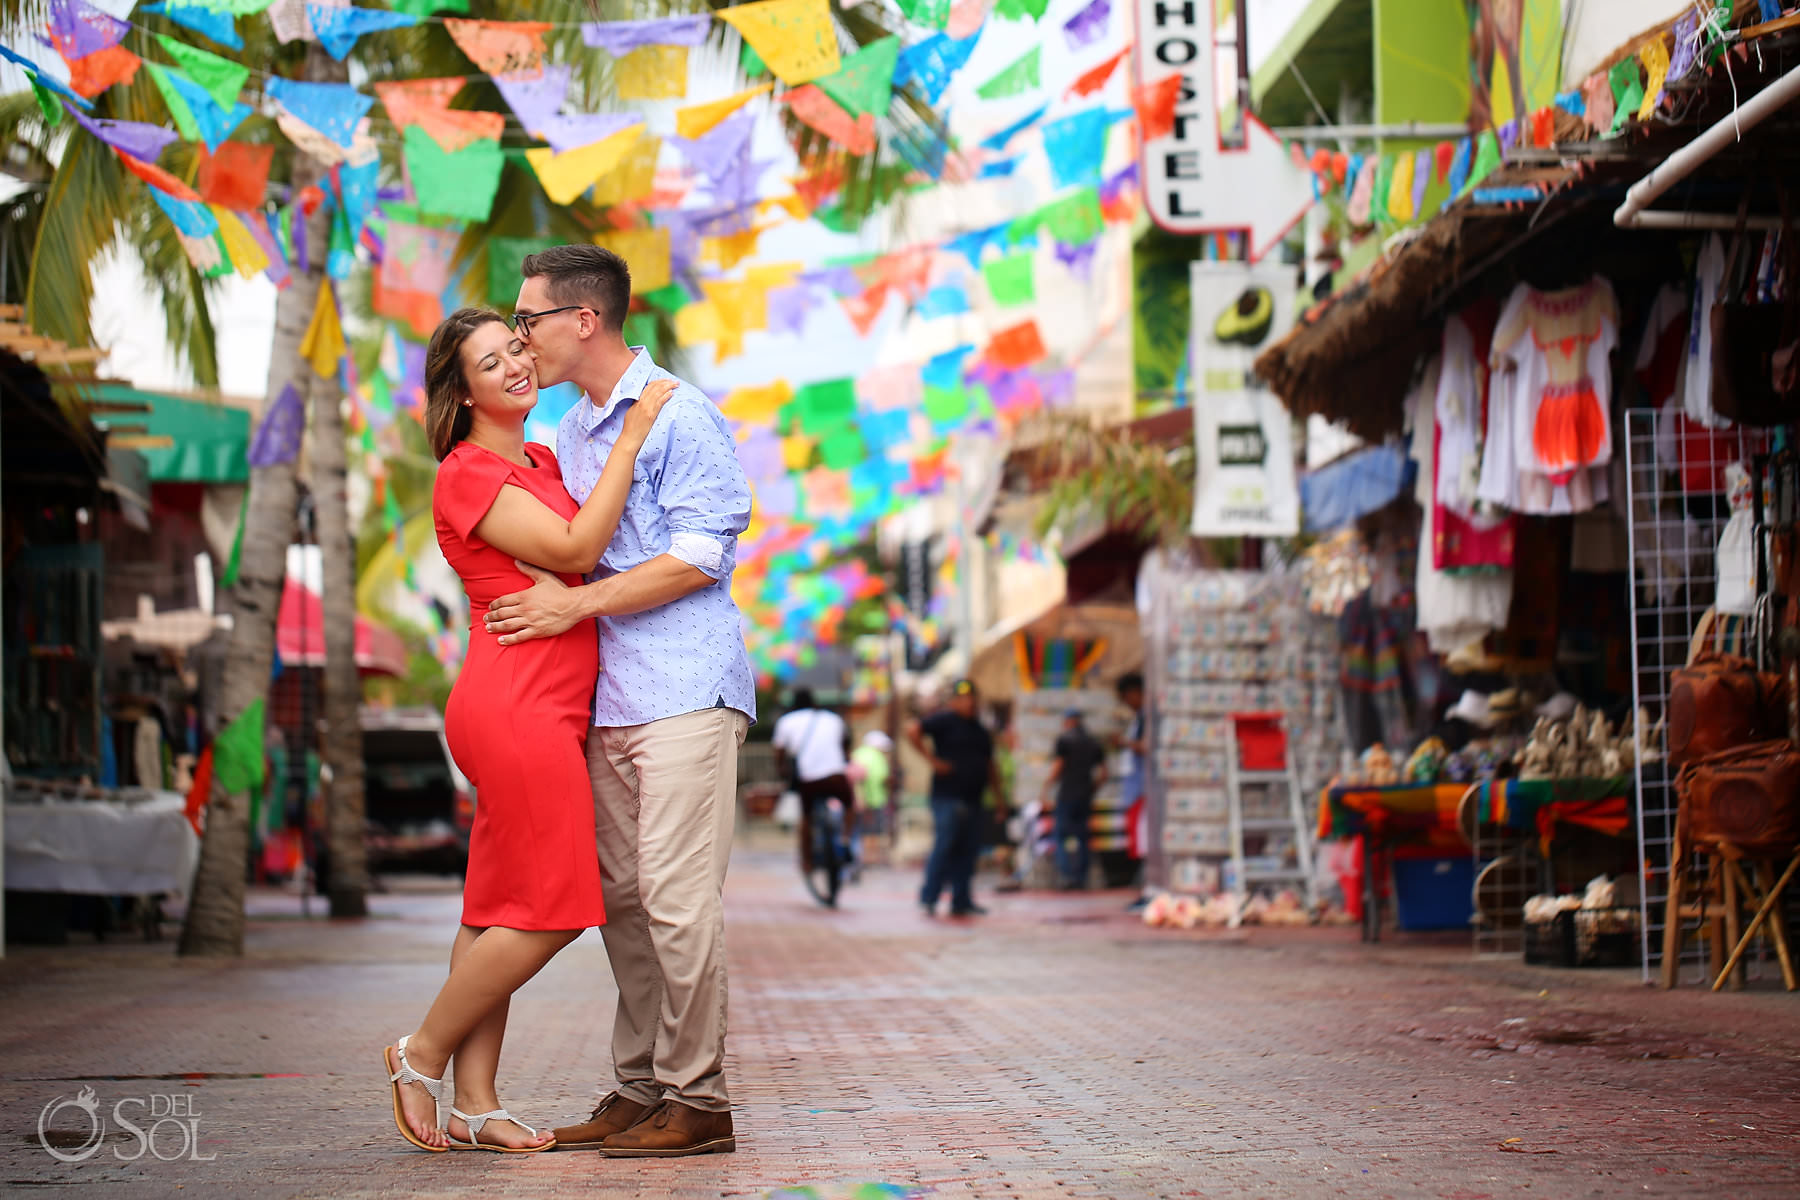 Engagement Photography 5th avenue playa del carmen